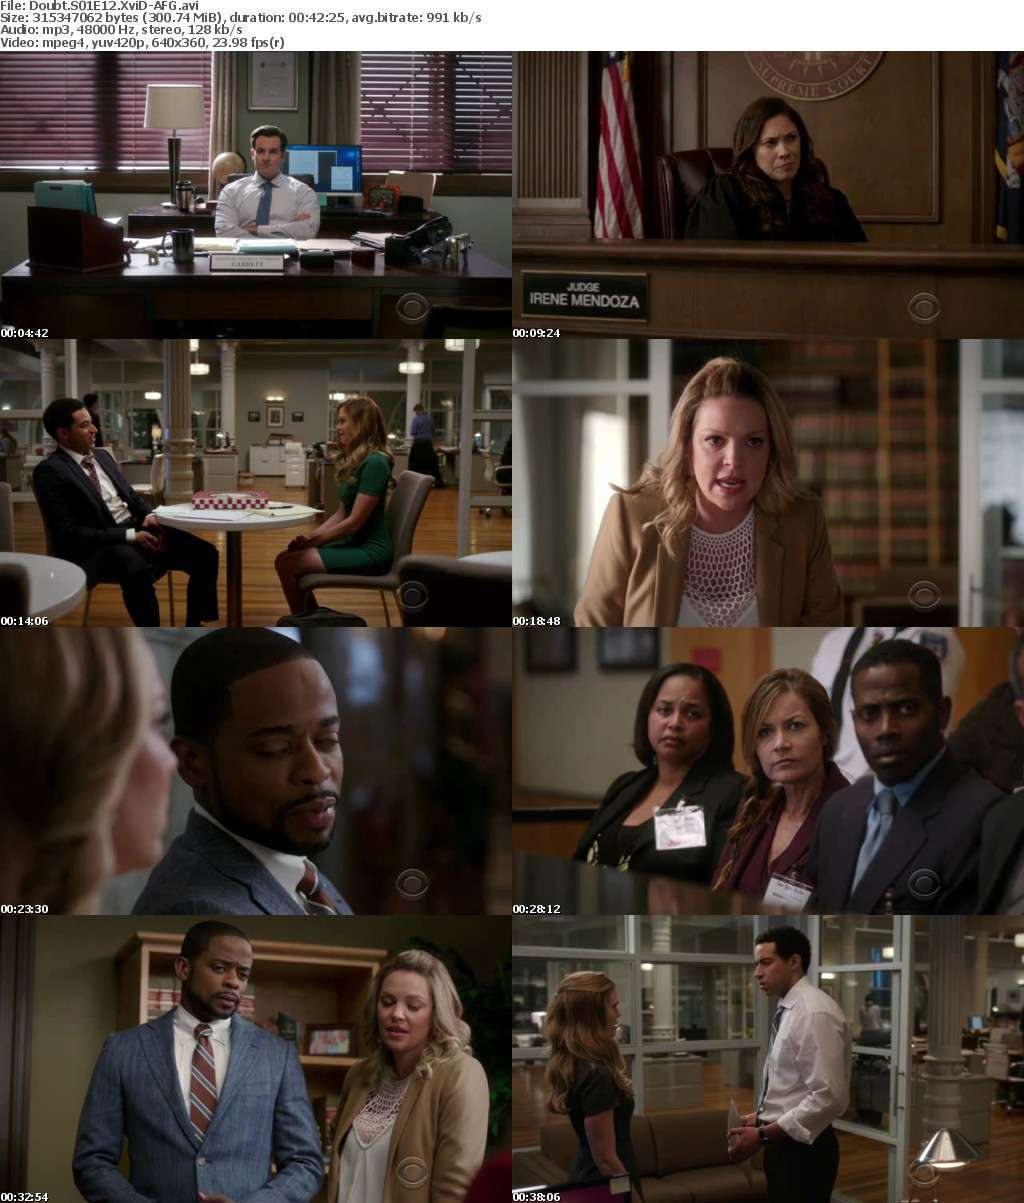 Doubt S01E12 XviD-AFG